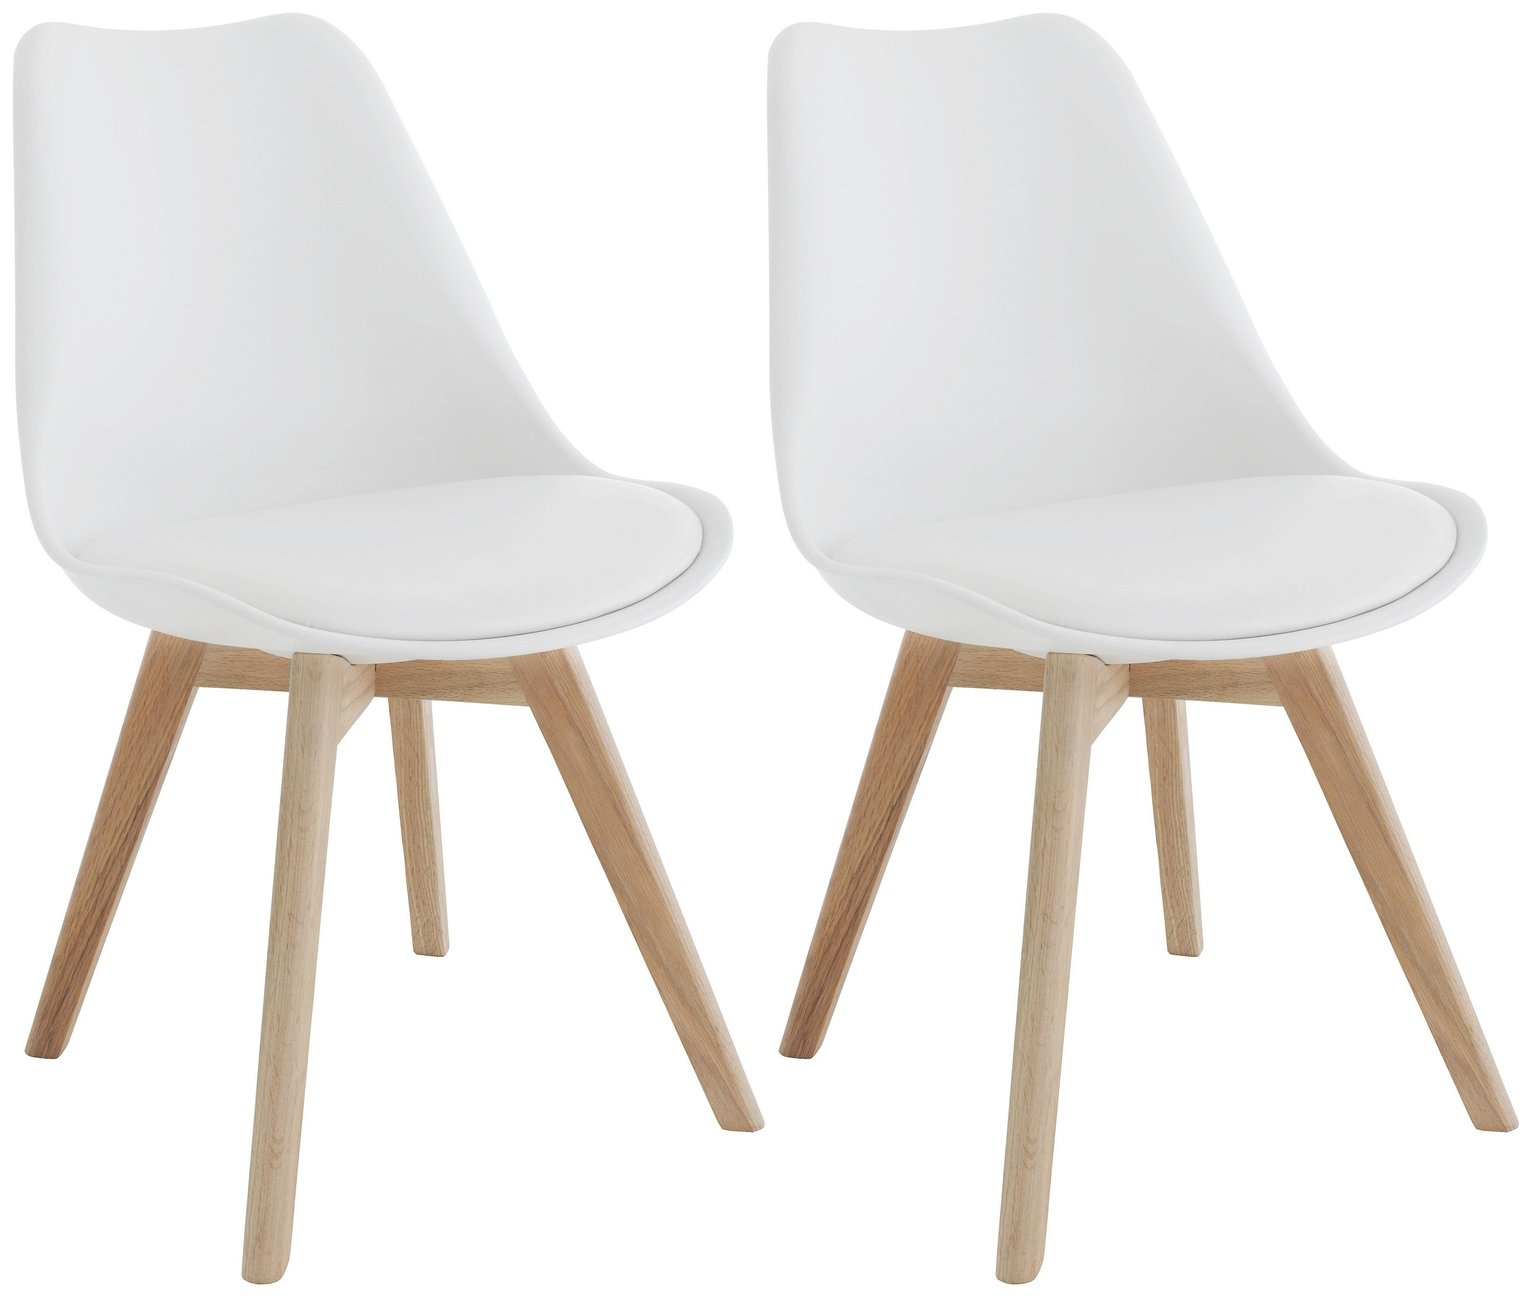 Habitat Jerry Pair of Dining Chairs - White